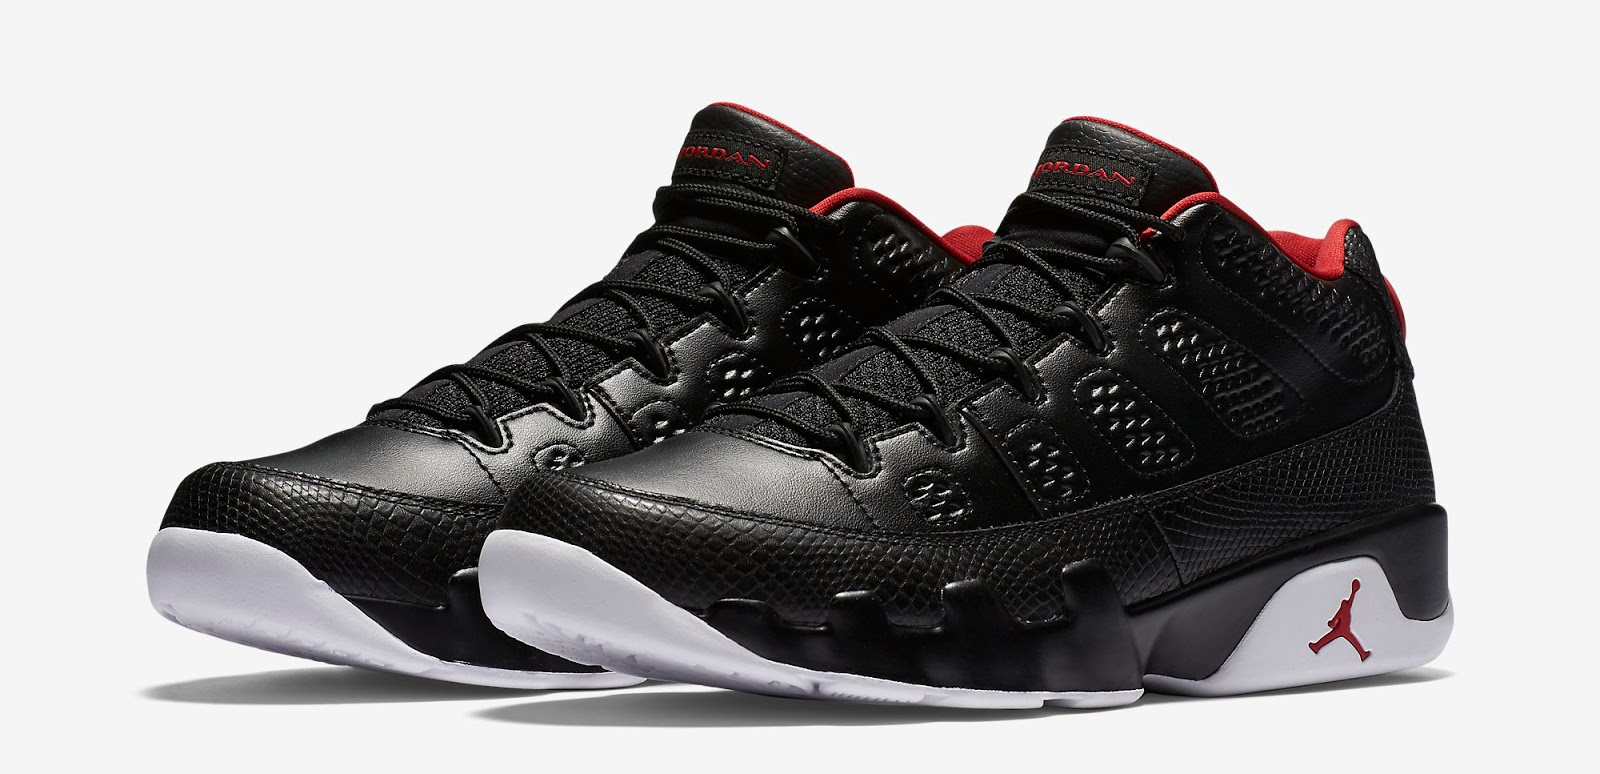 4d7fe6584506e5 The Air Jordan 9 Retro Low made its debut in 2002 and hasn t been seen  since. Now